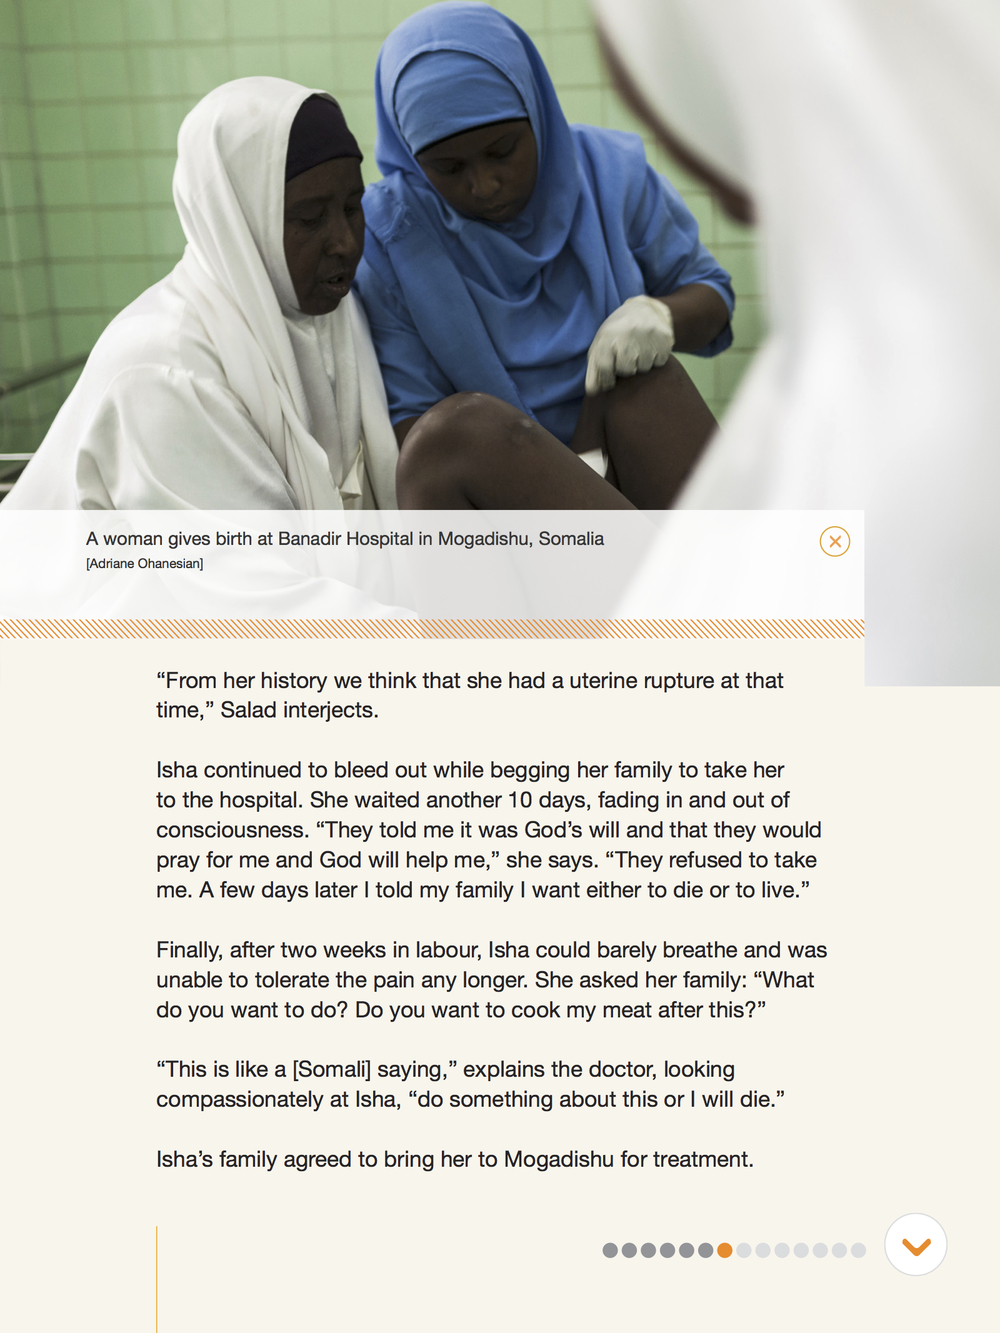 THE SURGEONS OF MOGADISHU 01_07.jpg